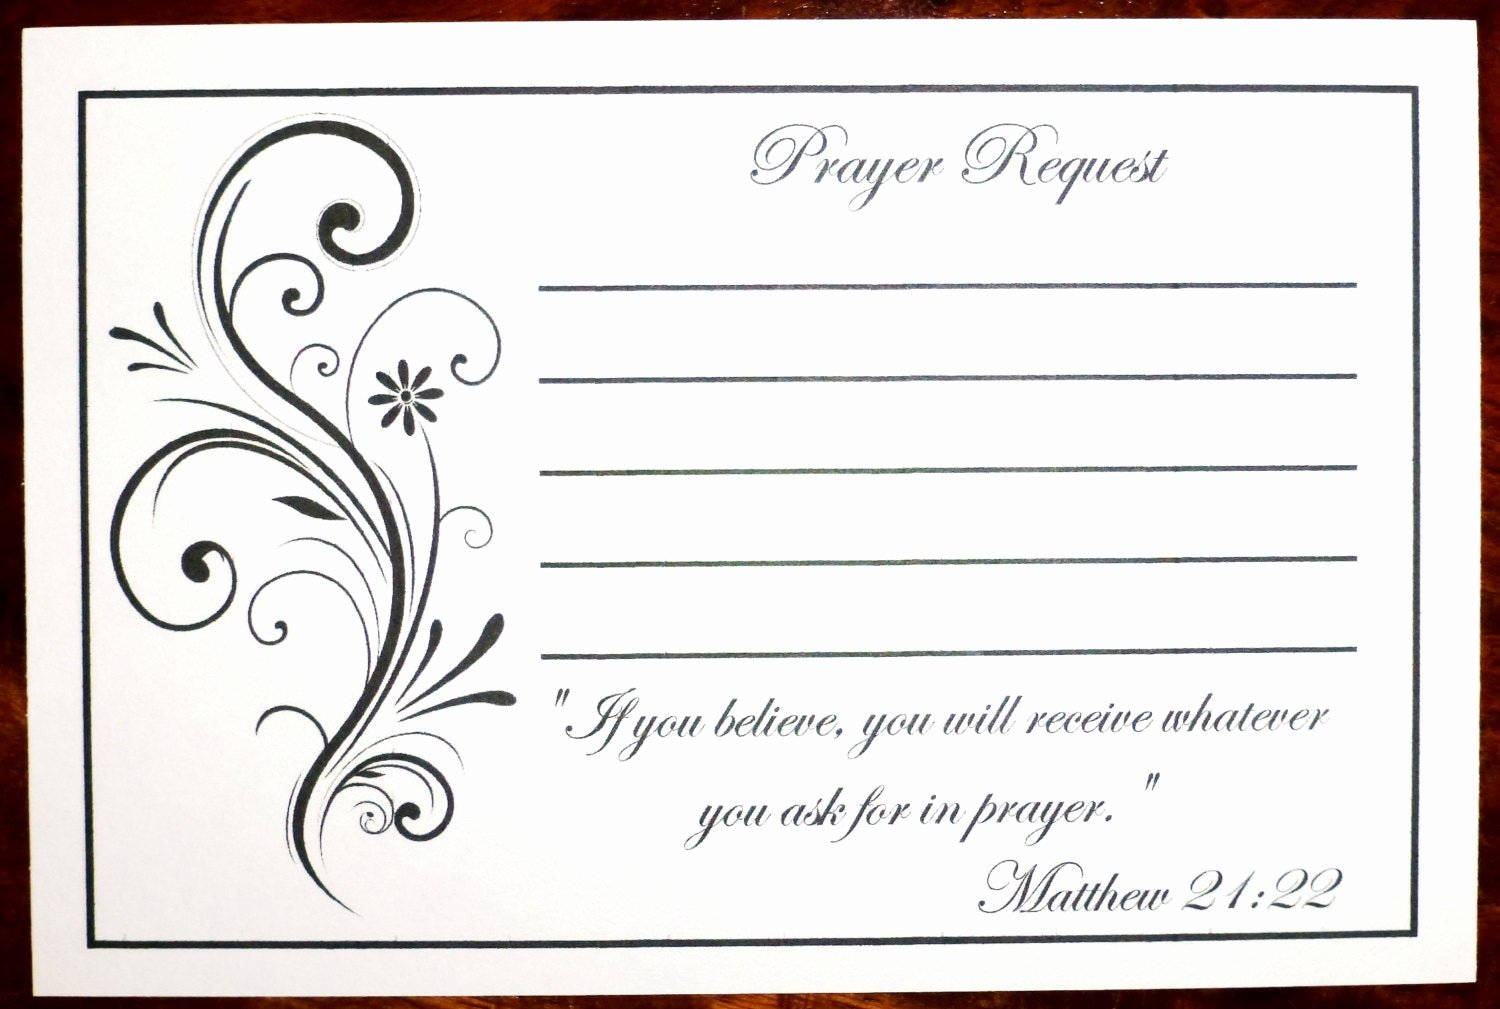 Prayer Card Templates Free Fresh Pack Of 100 Prayer Request Cards